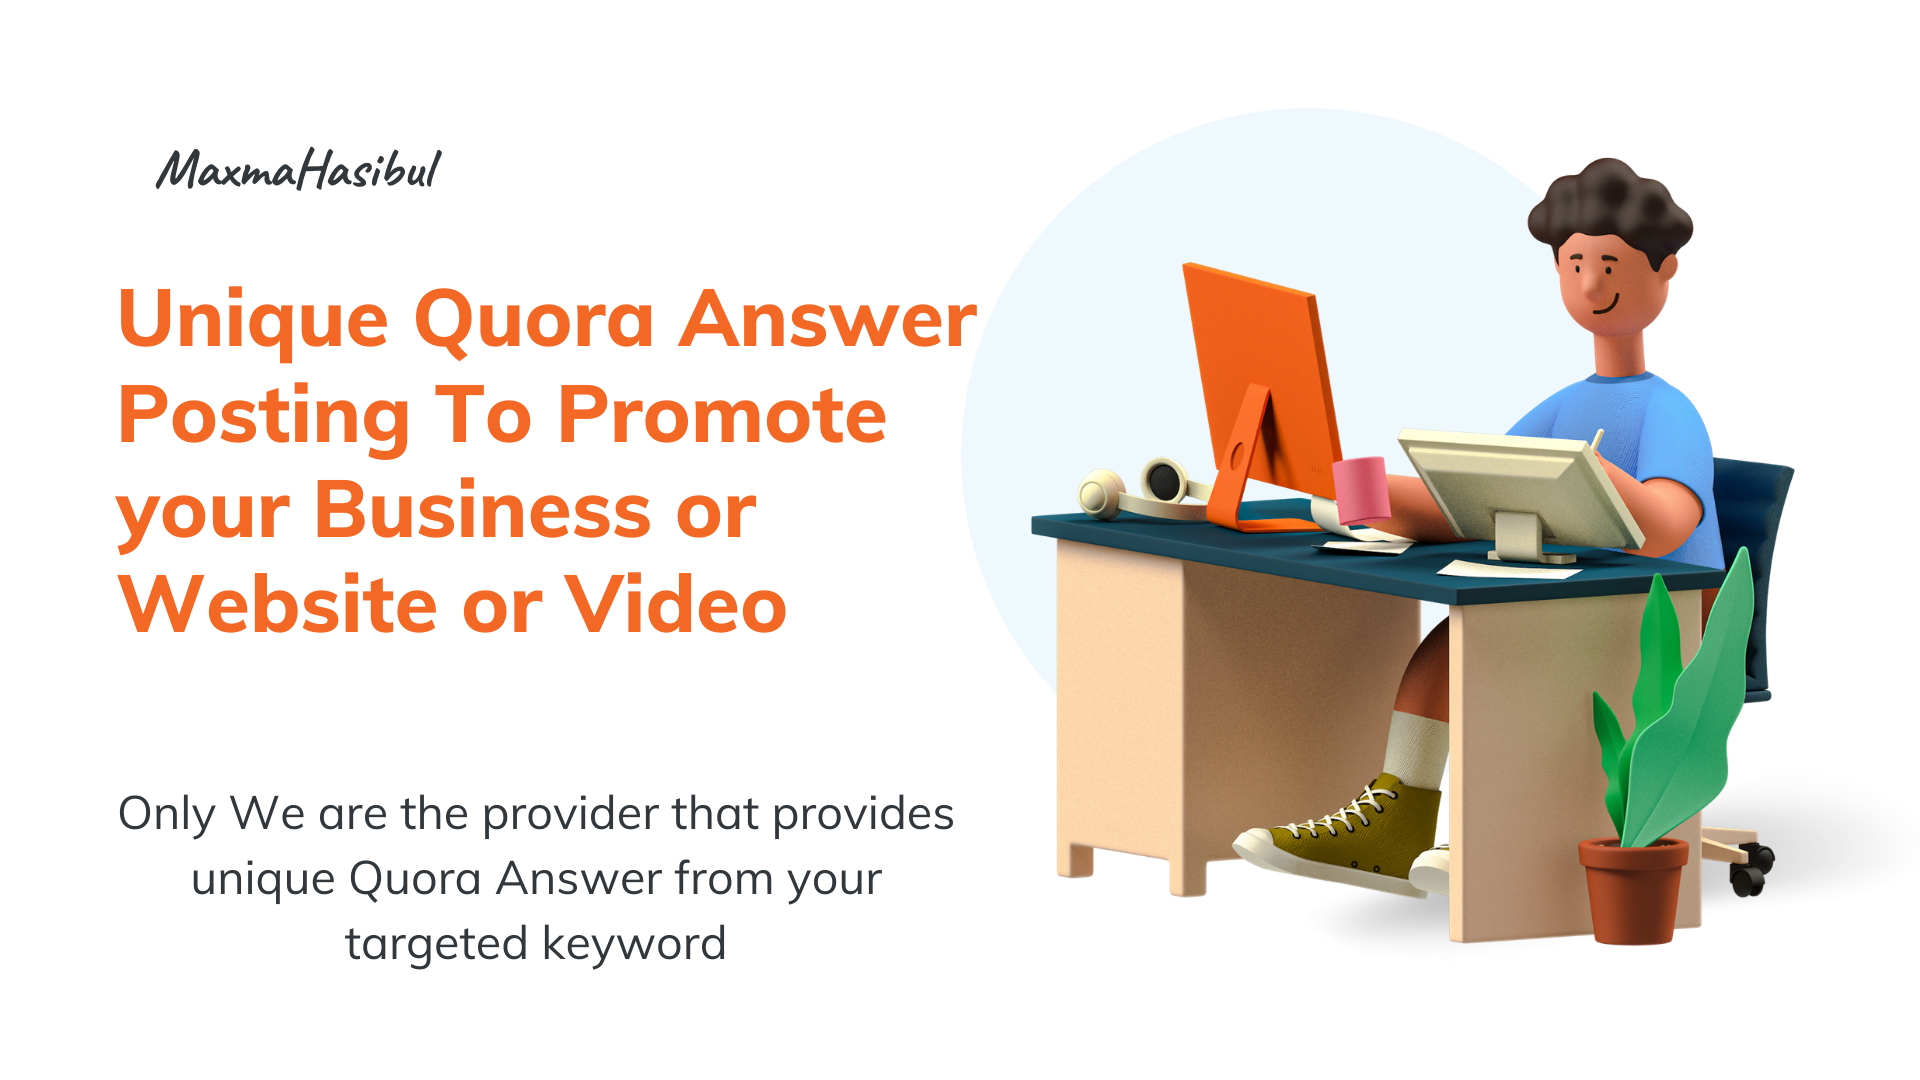 10 Unique Quora Answer Posting To Promote your Business or Website or Video